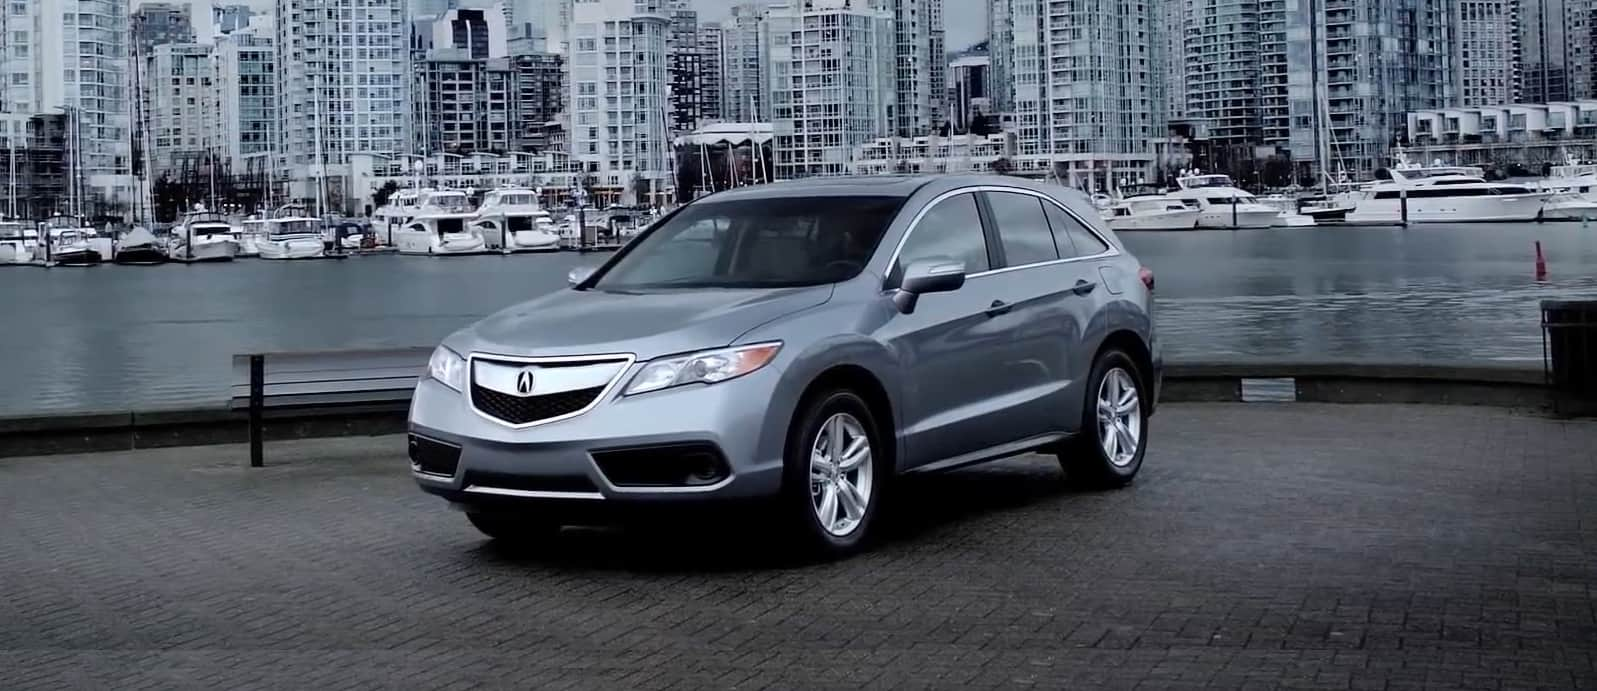 acura drive review car rdx top first speed specs gallery and models all